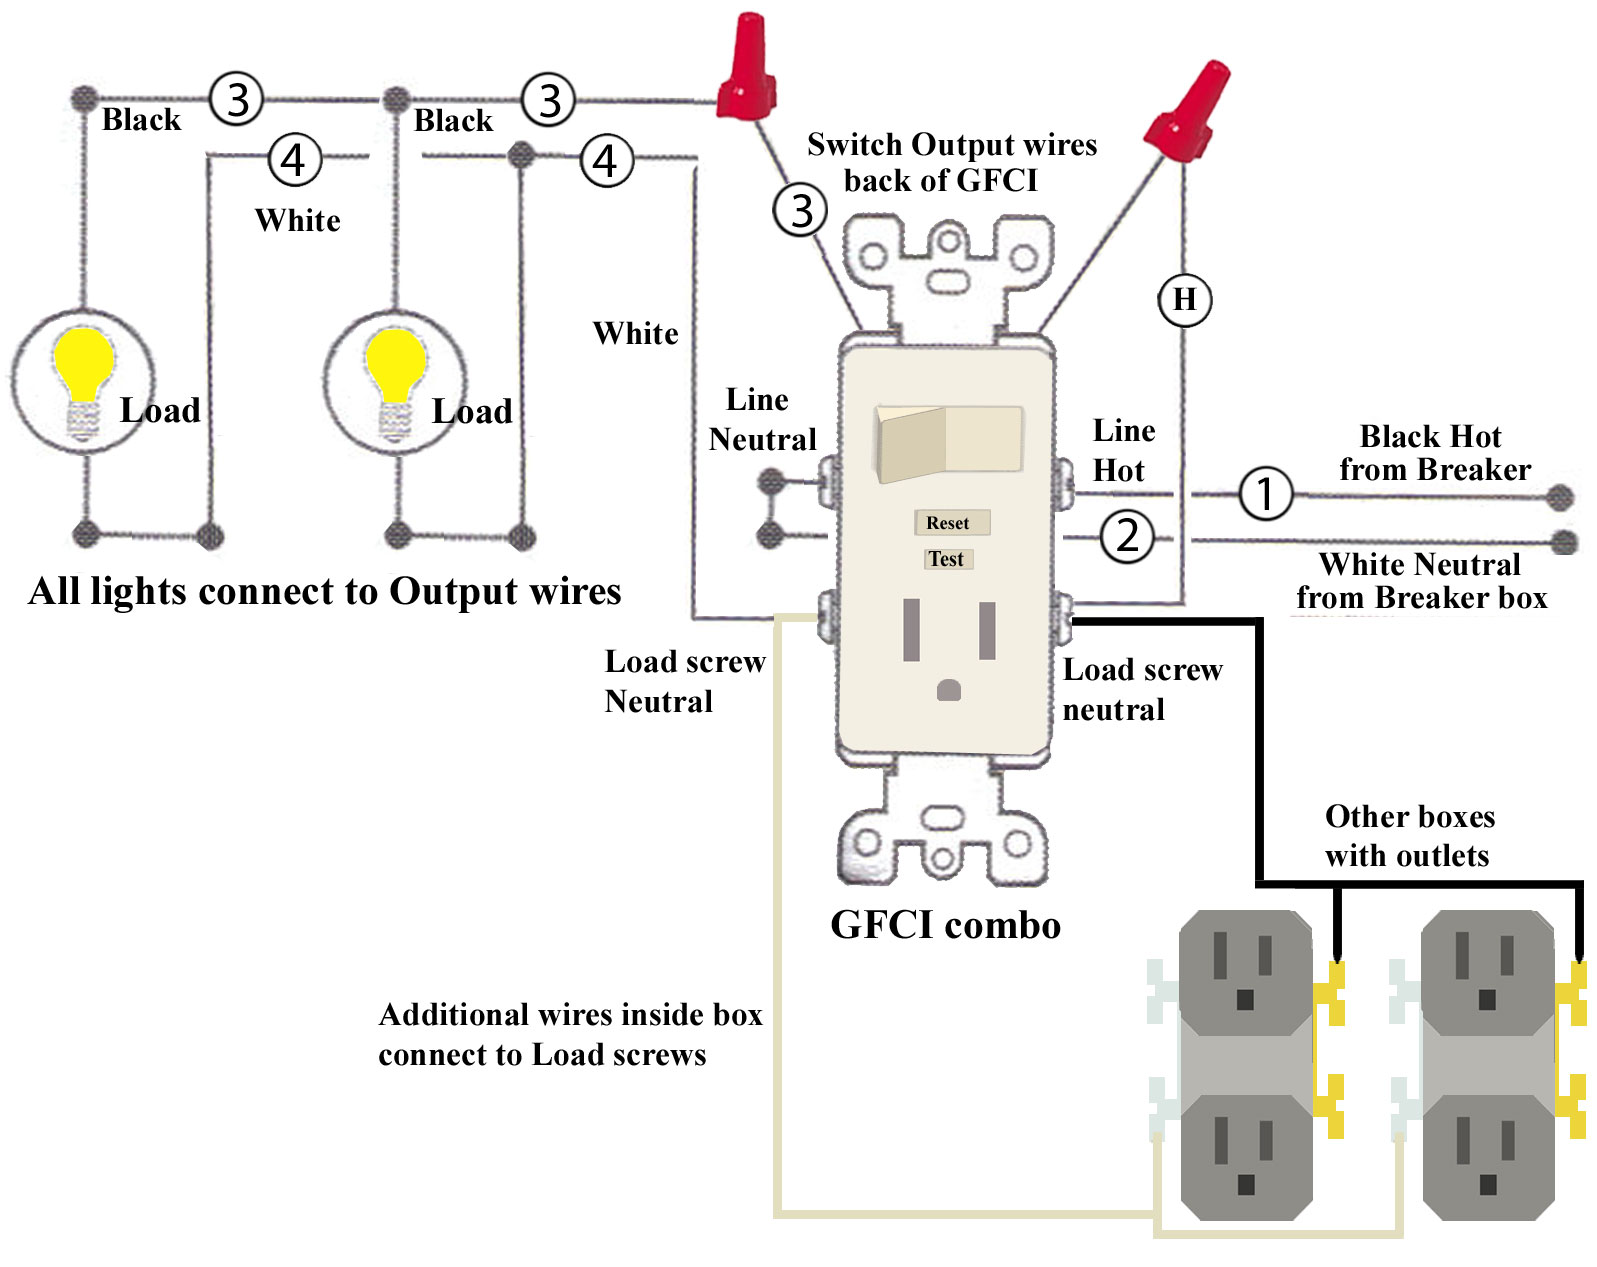 GFCI combo wiring3 update how to install and troubleshoot gfci leviton gfci wiring diagram at honlapkeszites.co